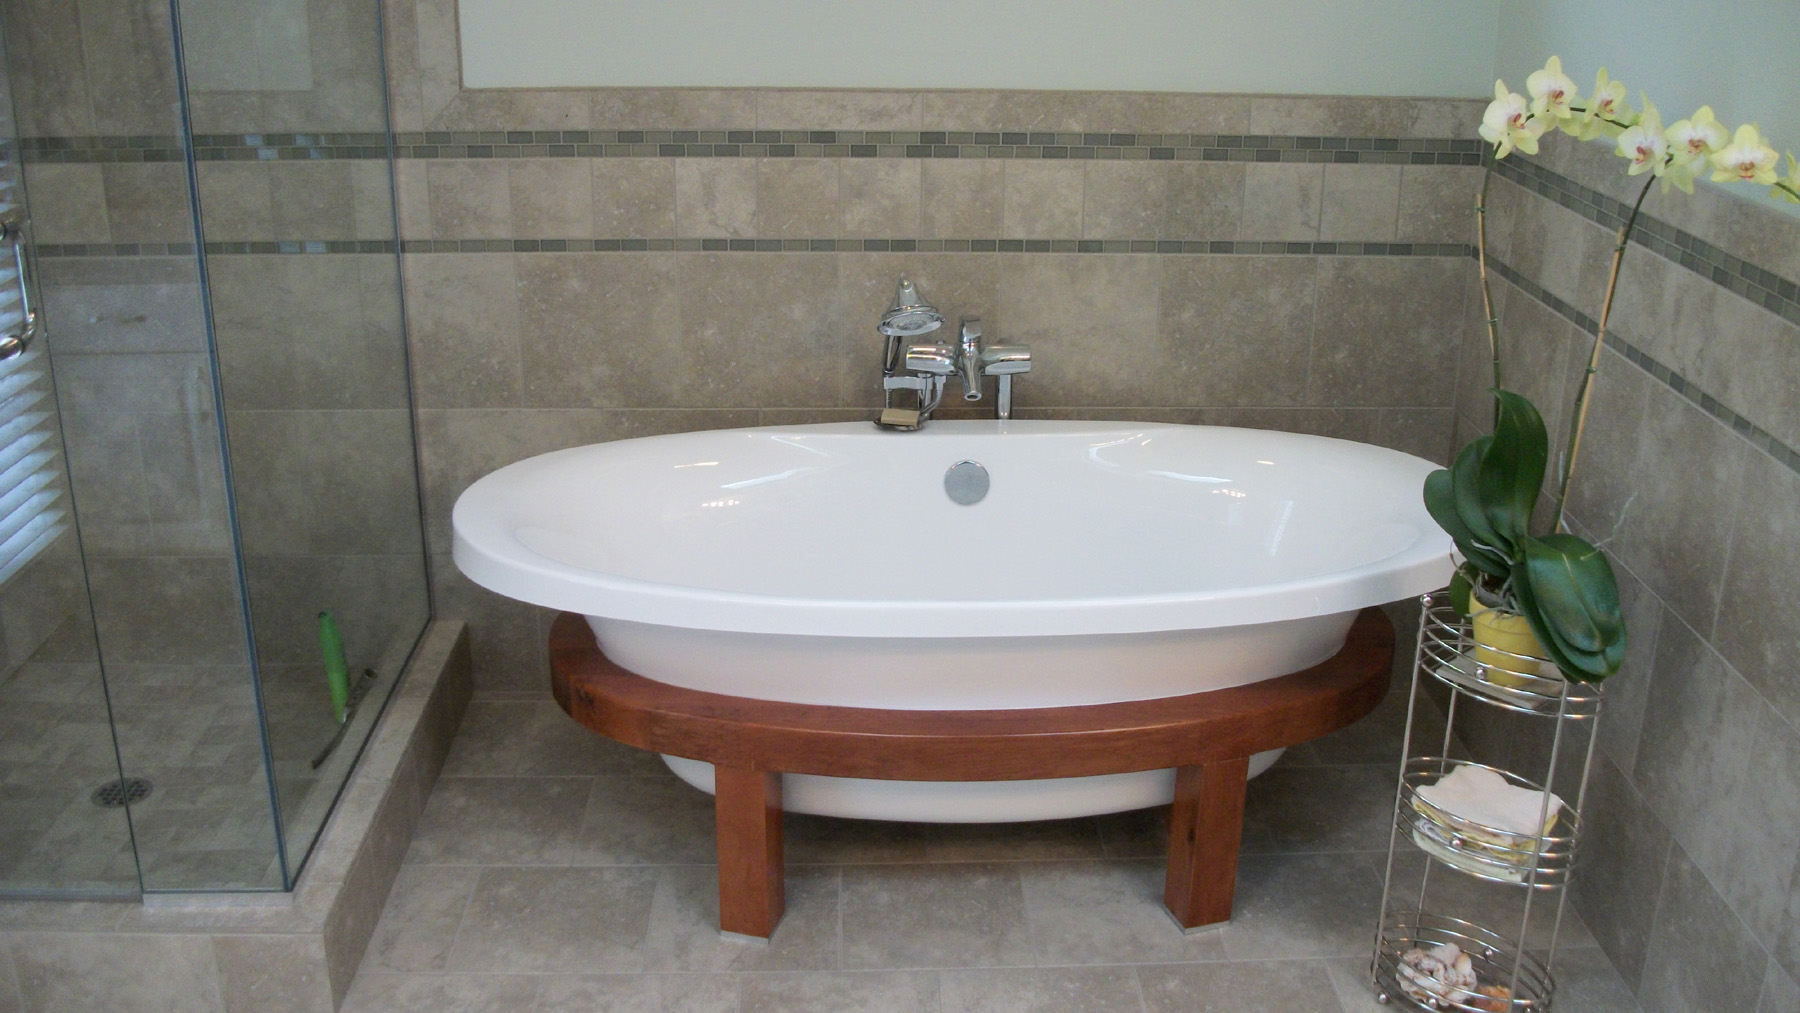 Bath Remodel Featuring Schon Free Standing Tub Notes